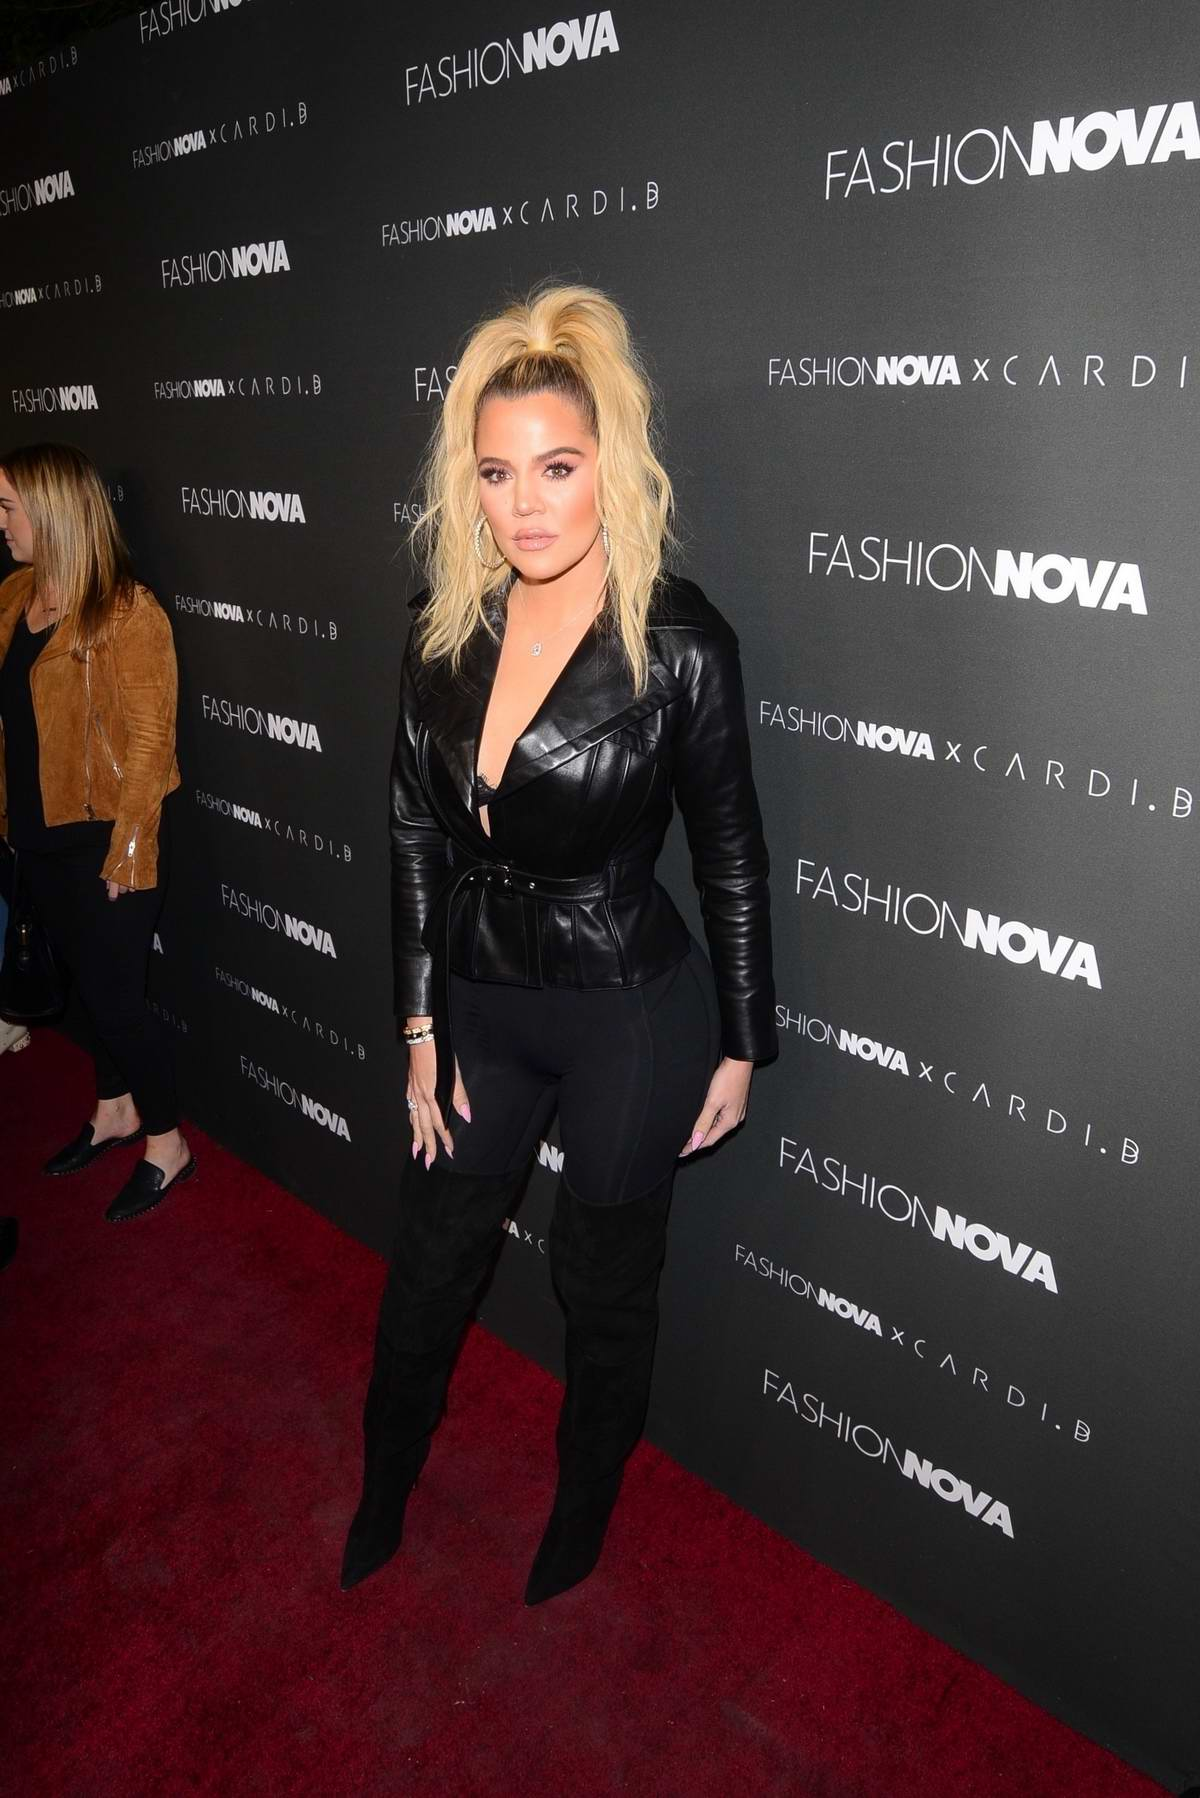 Khloe Kardashian attends Fashion Nova x Cardi B Event at Boulevard 3 in Hollywood, California